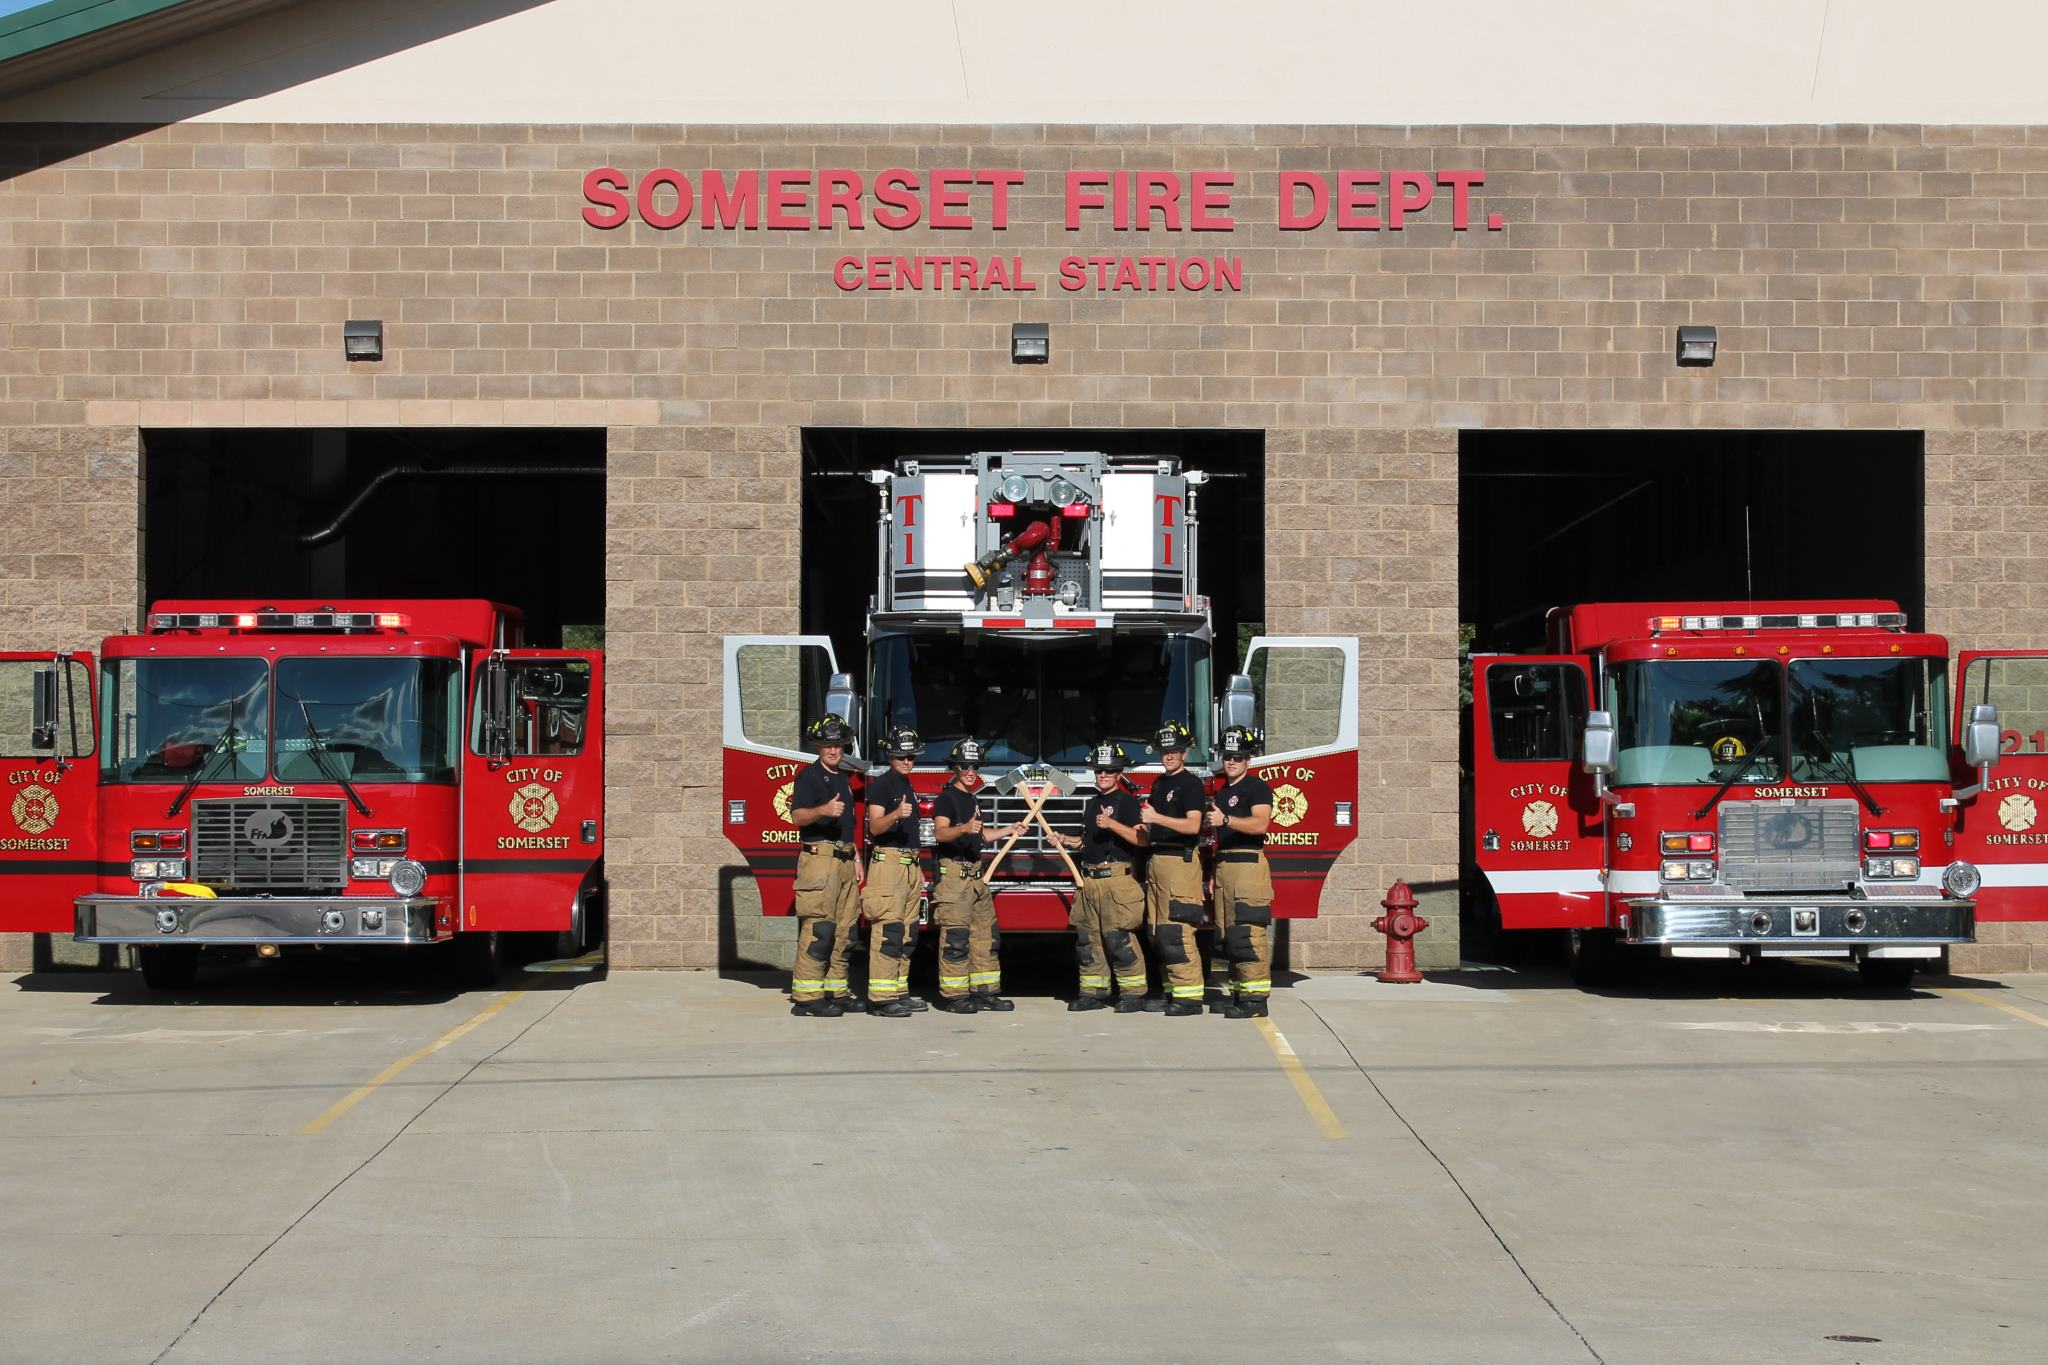 firemen standing in front of fire trucks at station